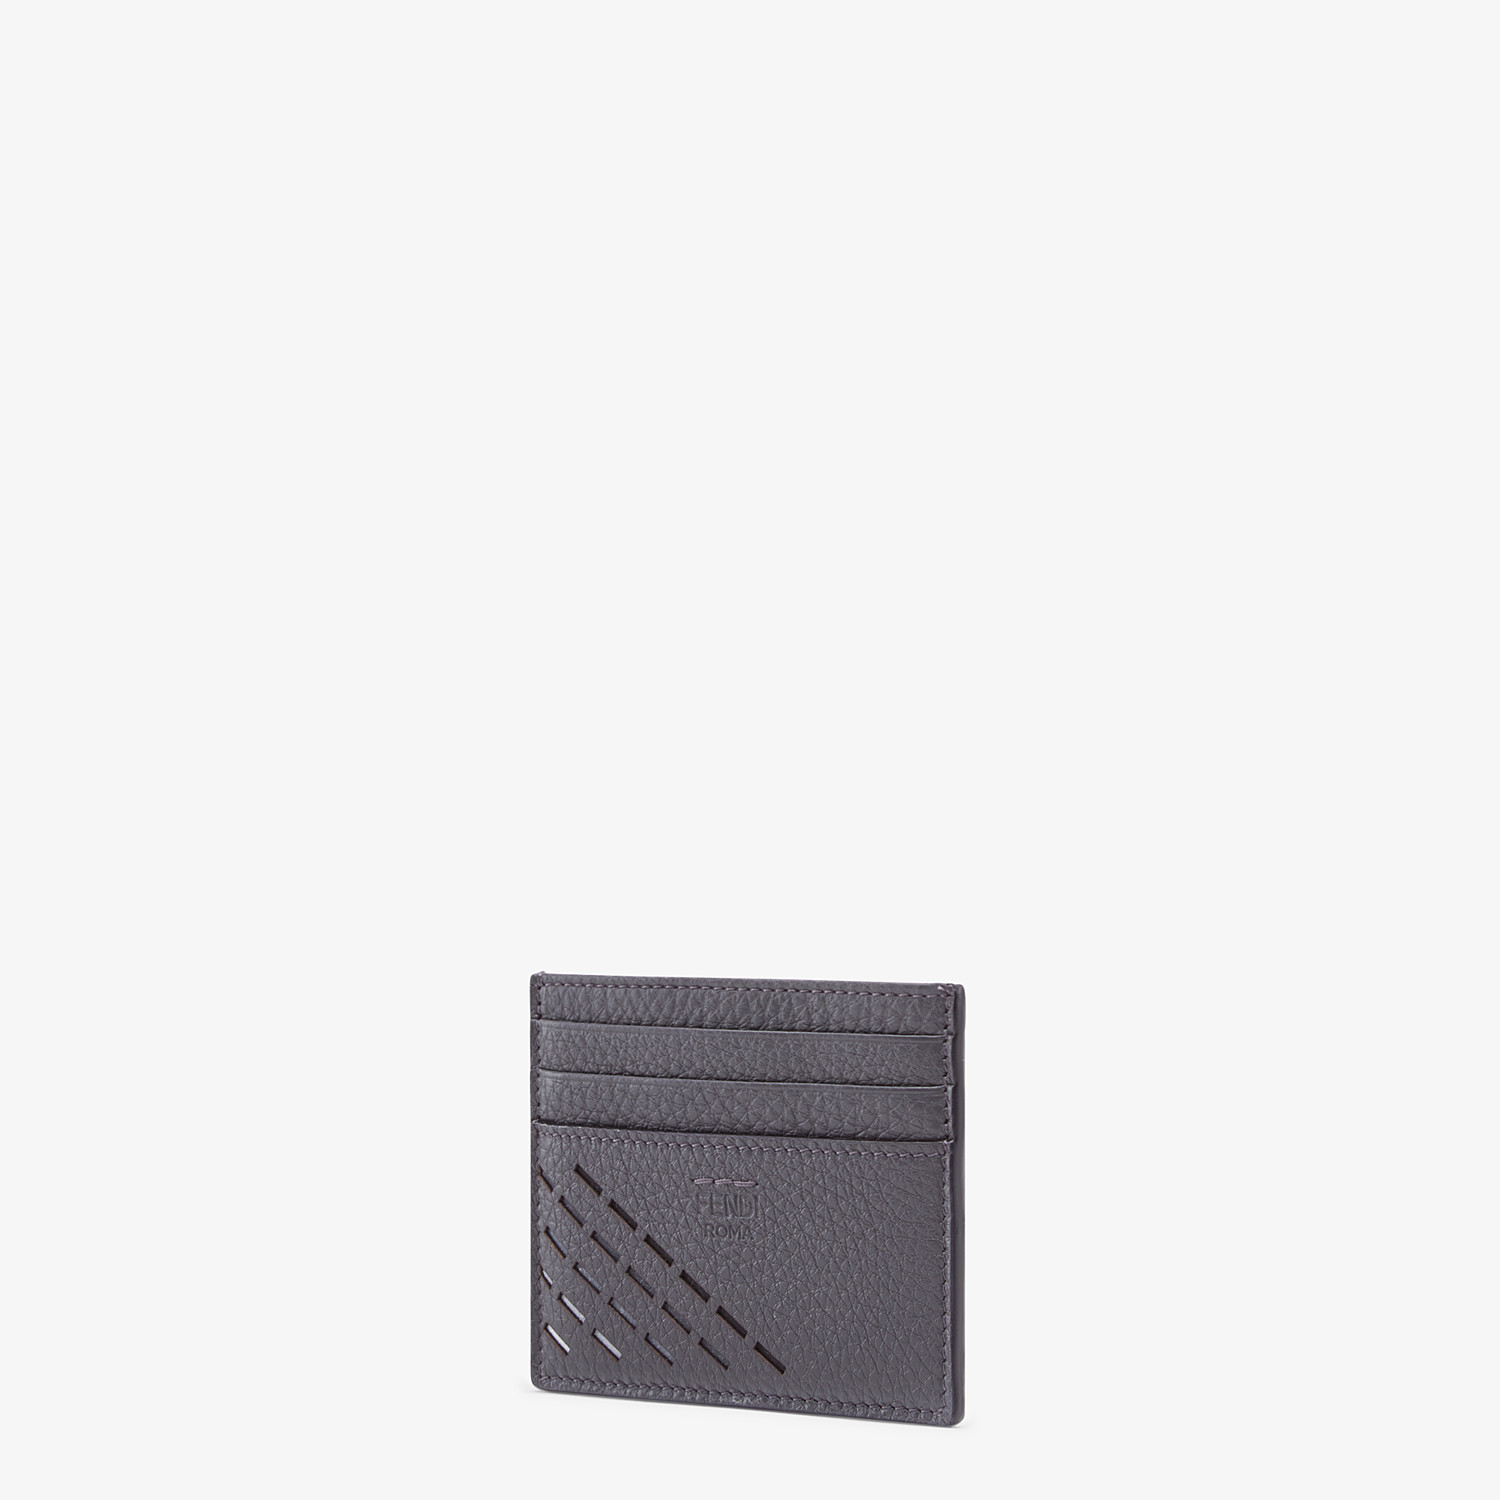 FENDI CARD HOLDER - Gray leather card holder - view 2 detail